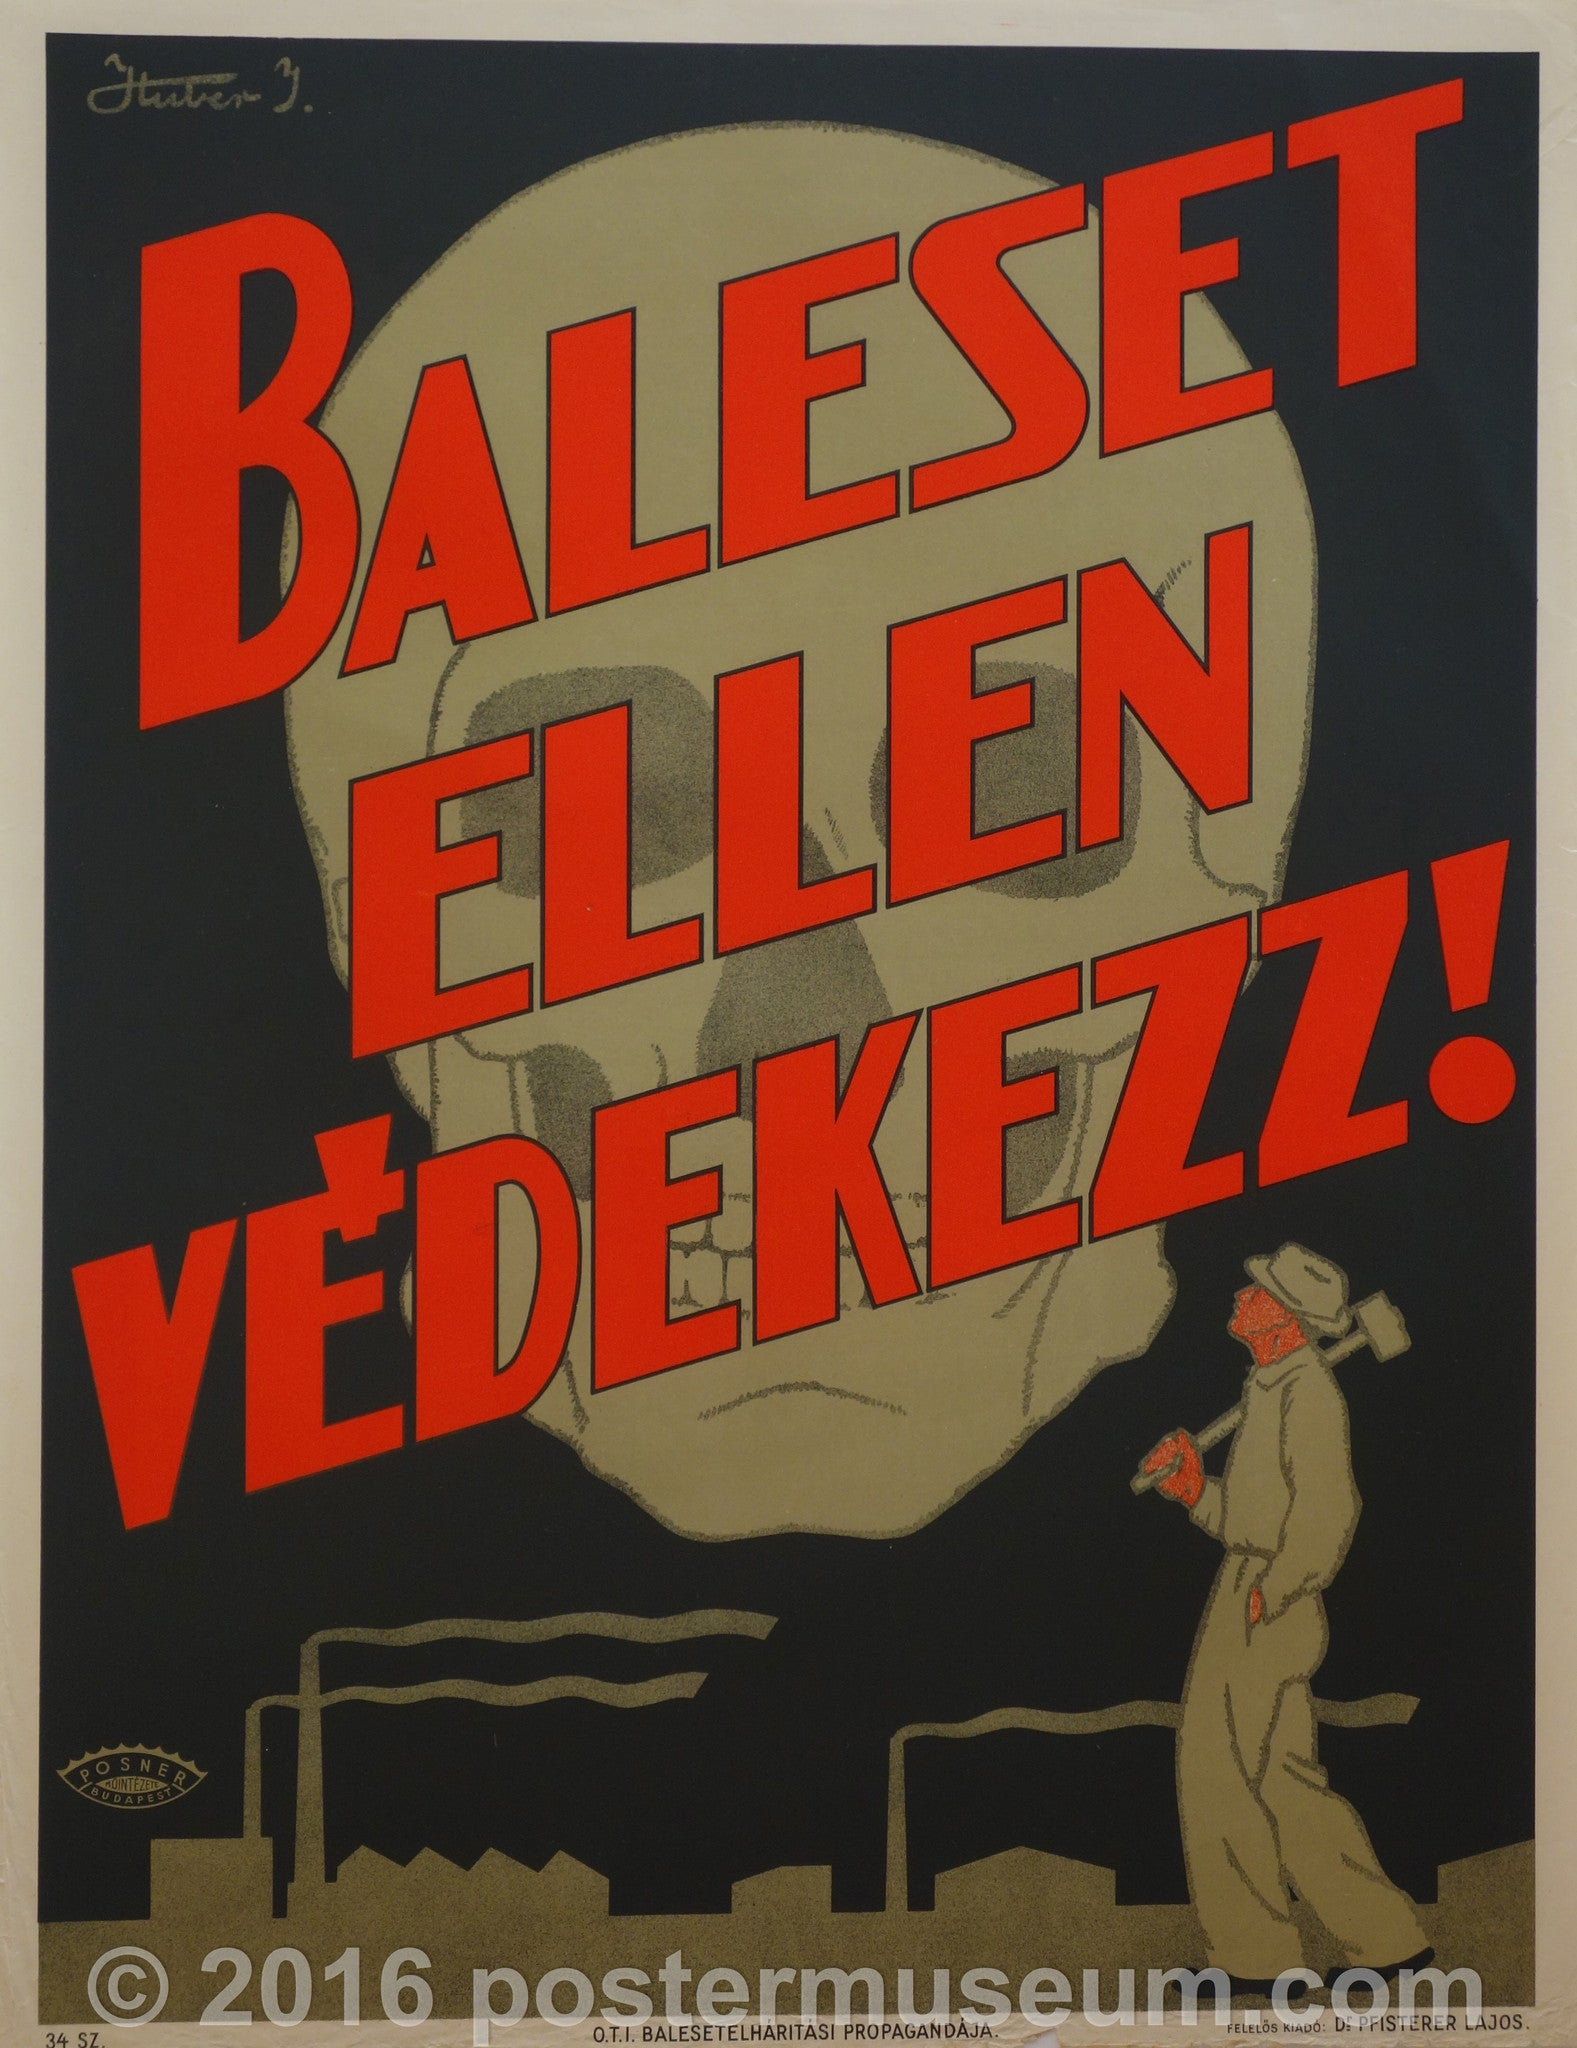 Baleset Ellen Vedekezz! (Guard Against Accidents)